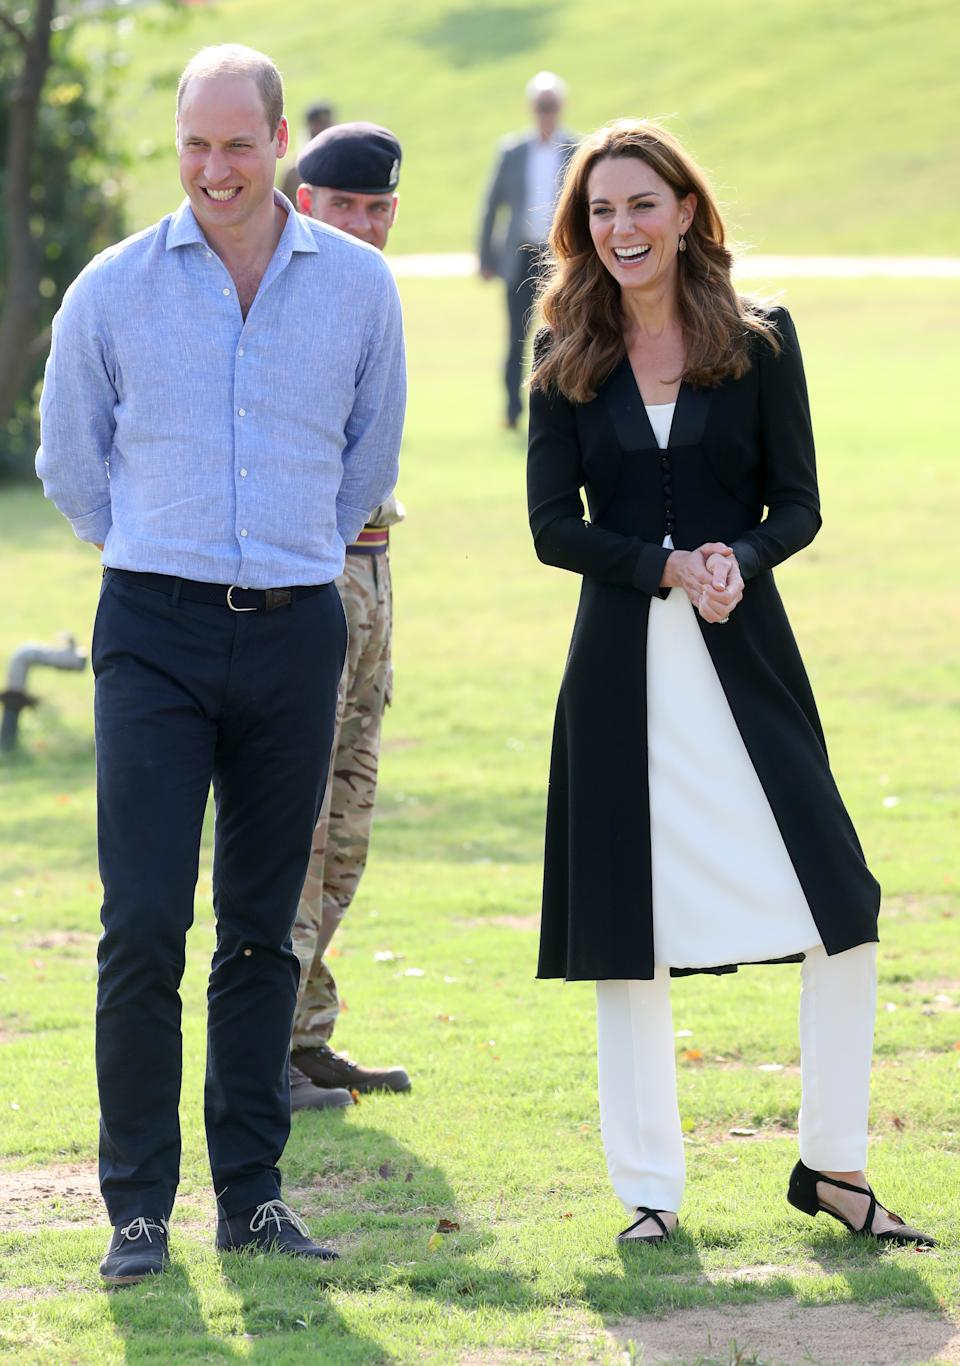 """For the final engagement of the tour, Kate wore a long black jacket by <a href=""""https://fave.co/32pDAx6"""" rel=""""nofollow noopener"""" target=""""_blank"""" data-ylk=""""slk:Beulah London"""" class=""""link rapid-noclick-resp"""">Beulah London</a>, which was from the brands 2014 collection. She paired it with <a href=""""https://fave.co/2MMzGHY"""" rel=""""nofollow noopener"""" target=""""_blank"""" data-ylk=""""slk:£195 Russell & Bromley crossover flats"""" class=""""link rapid-noclick-resp"""">£195 Russell & Bromley crossover flats</a>. [Photo: Getty]"""